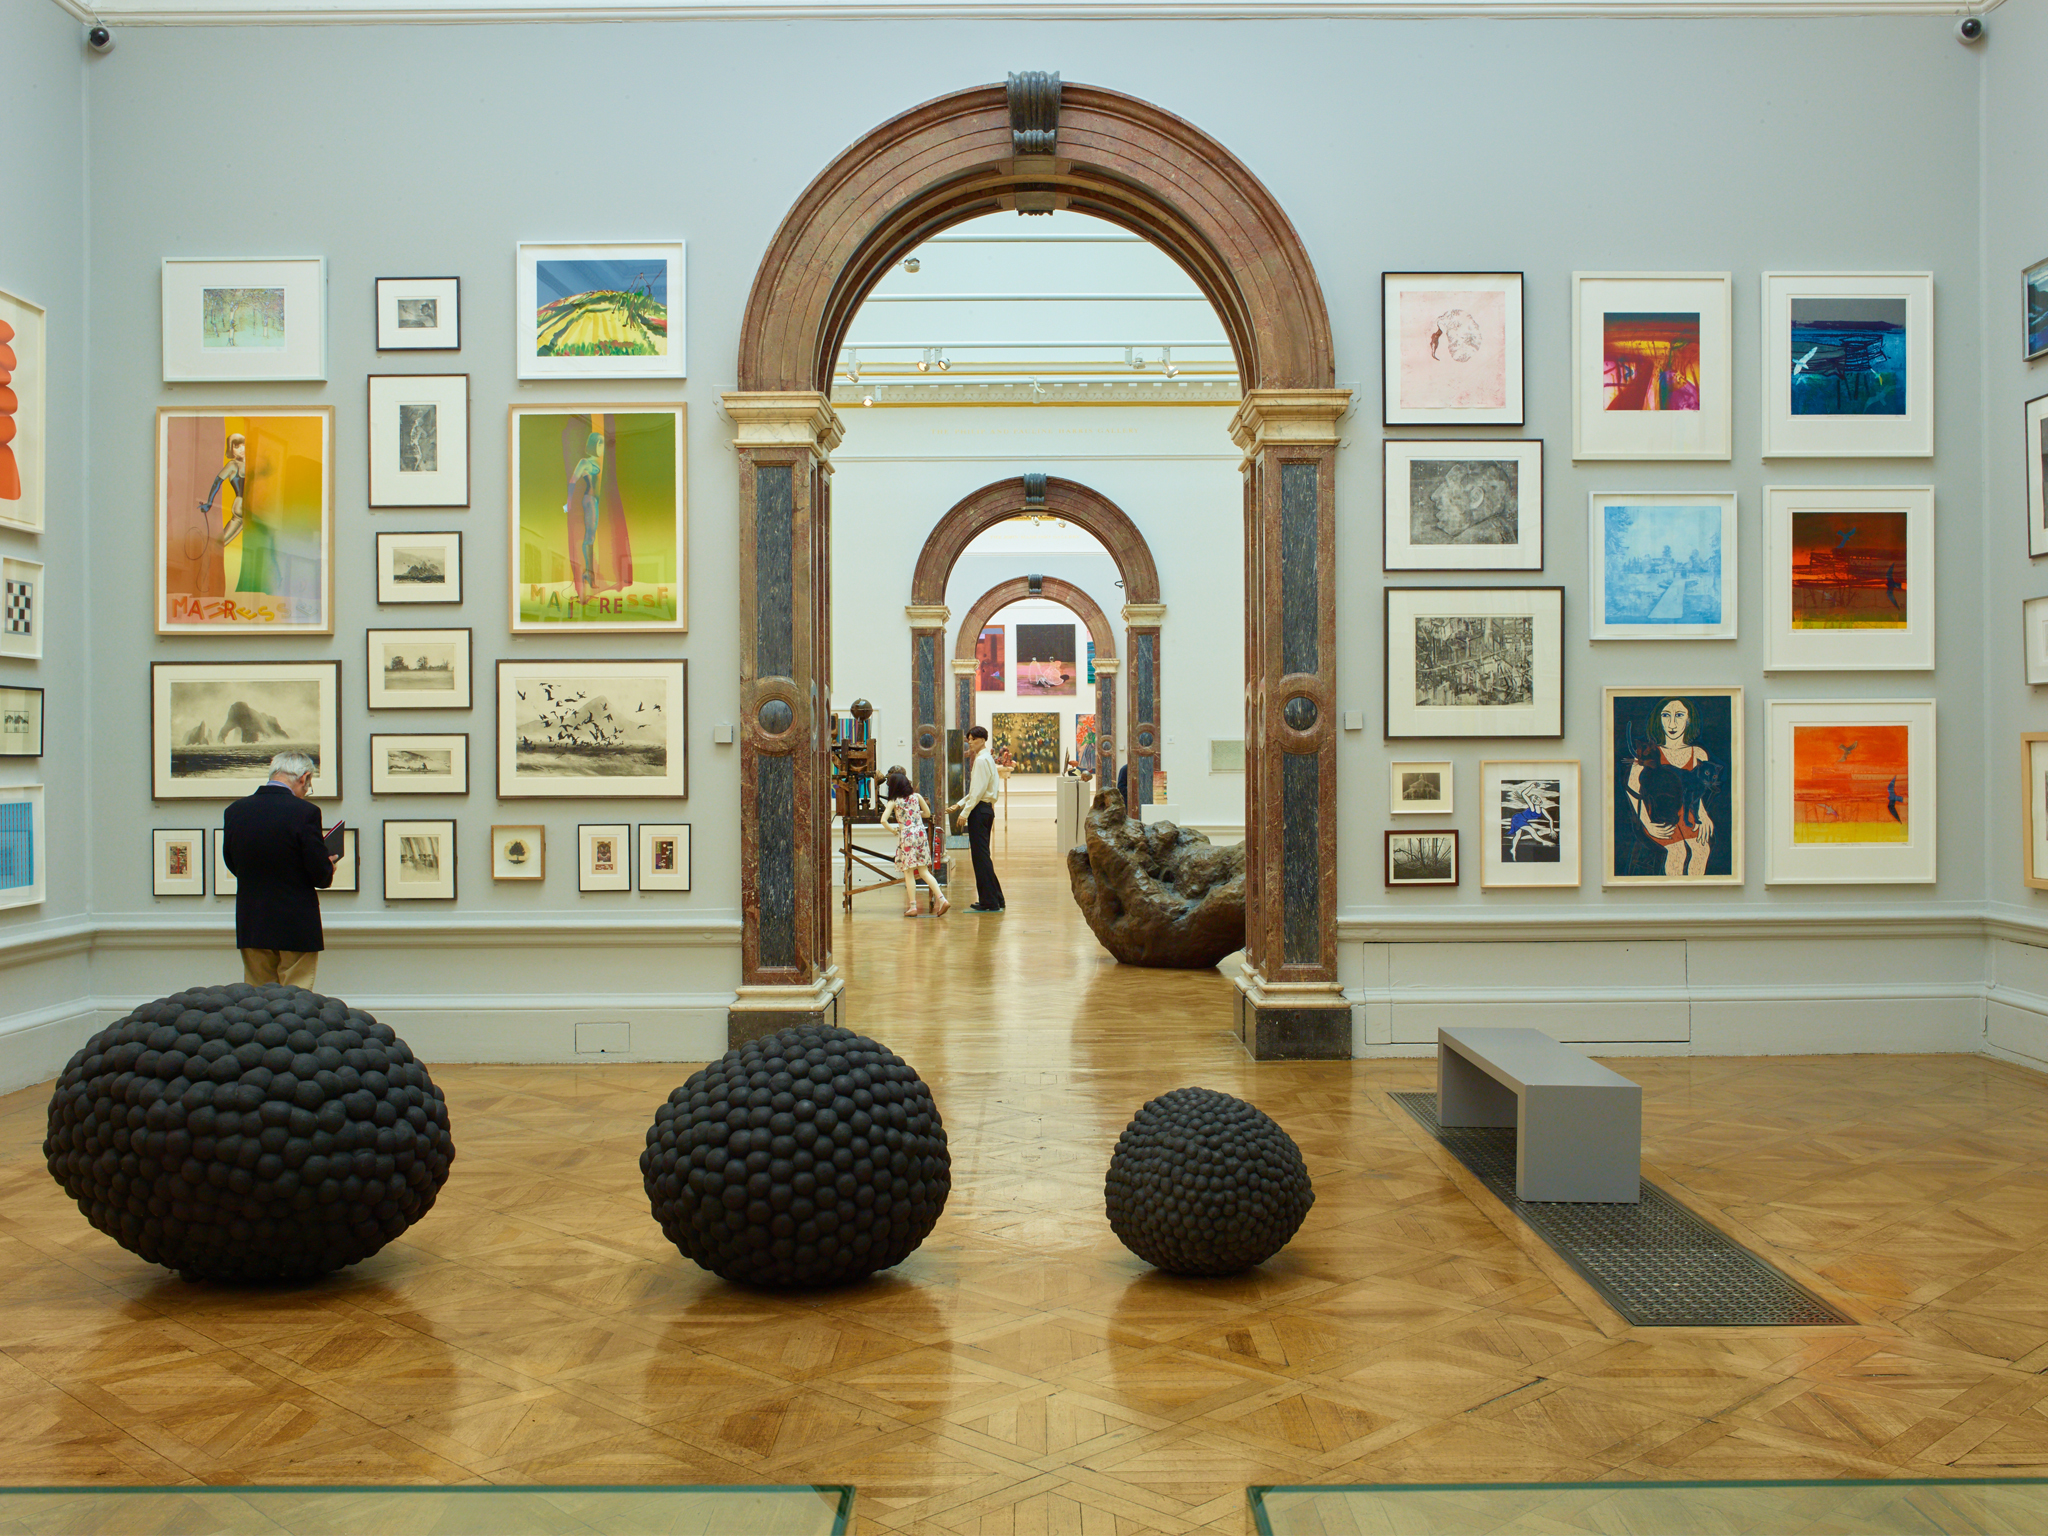 The Summer Exhibition: Like Tinder, for art